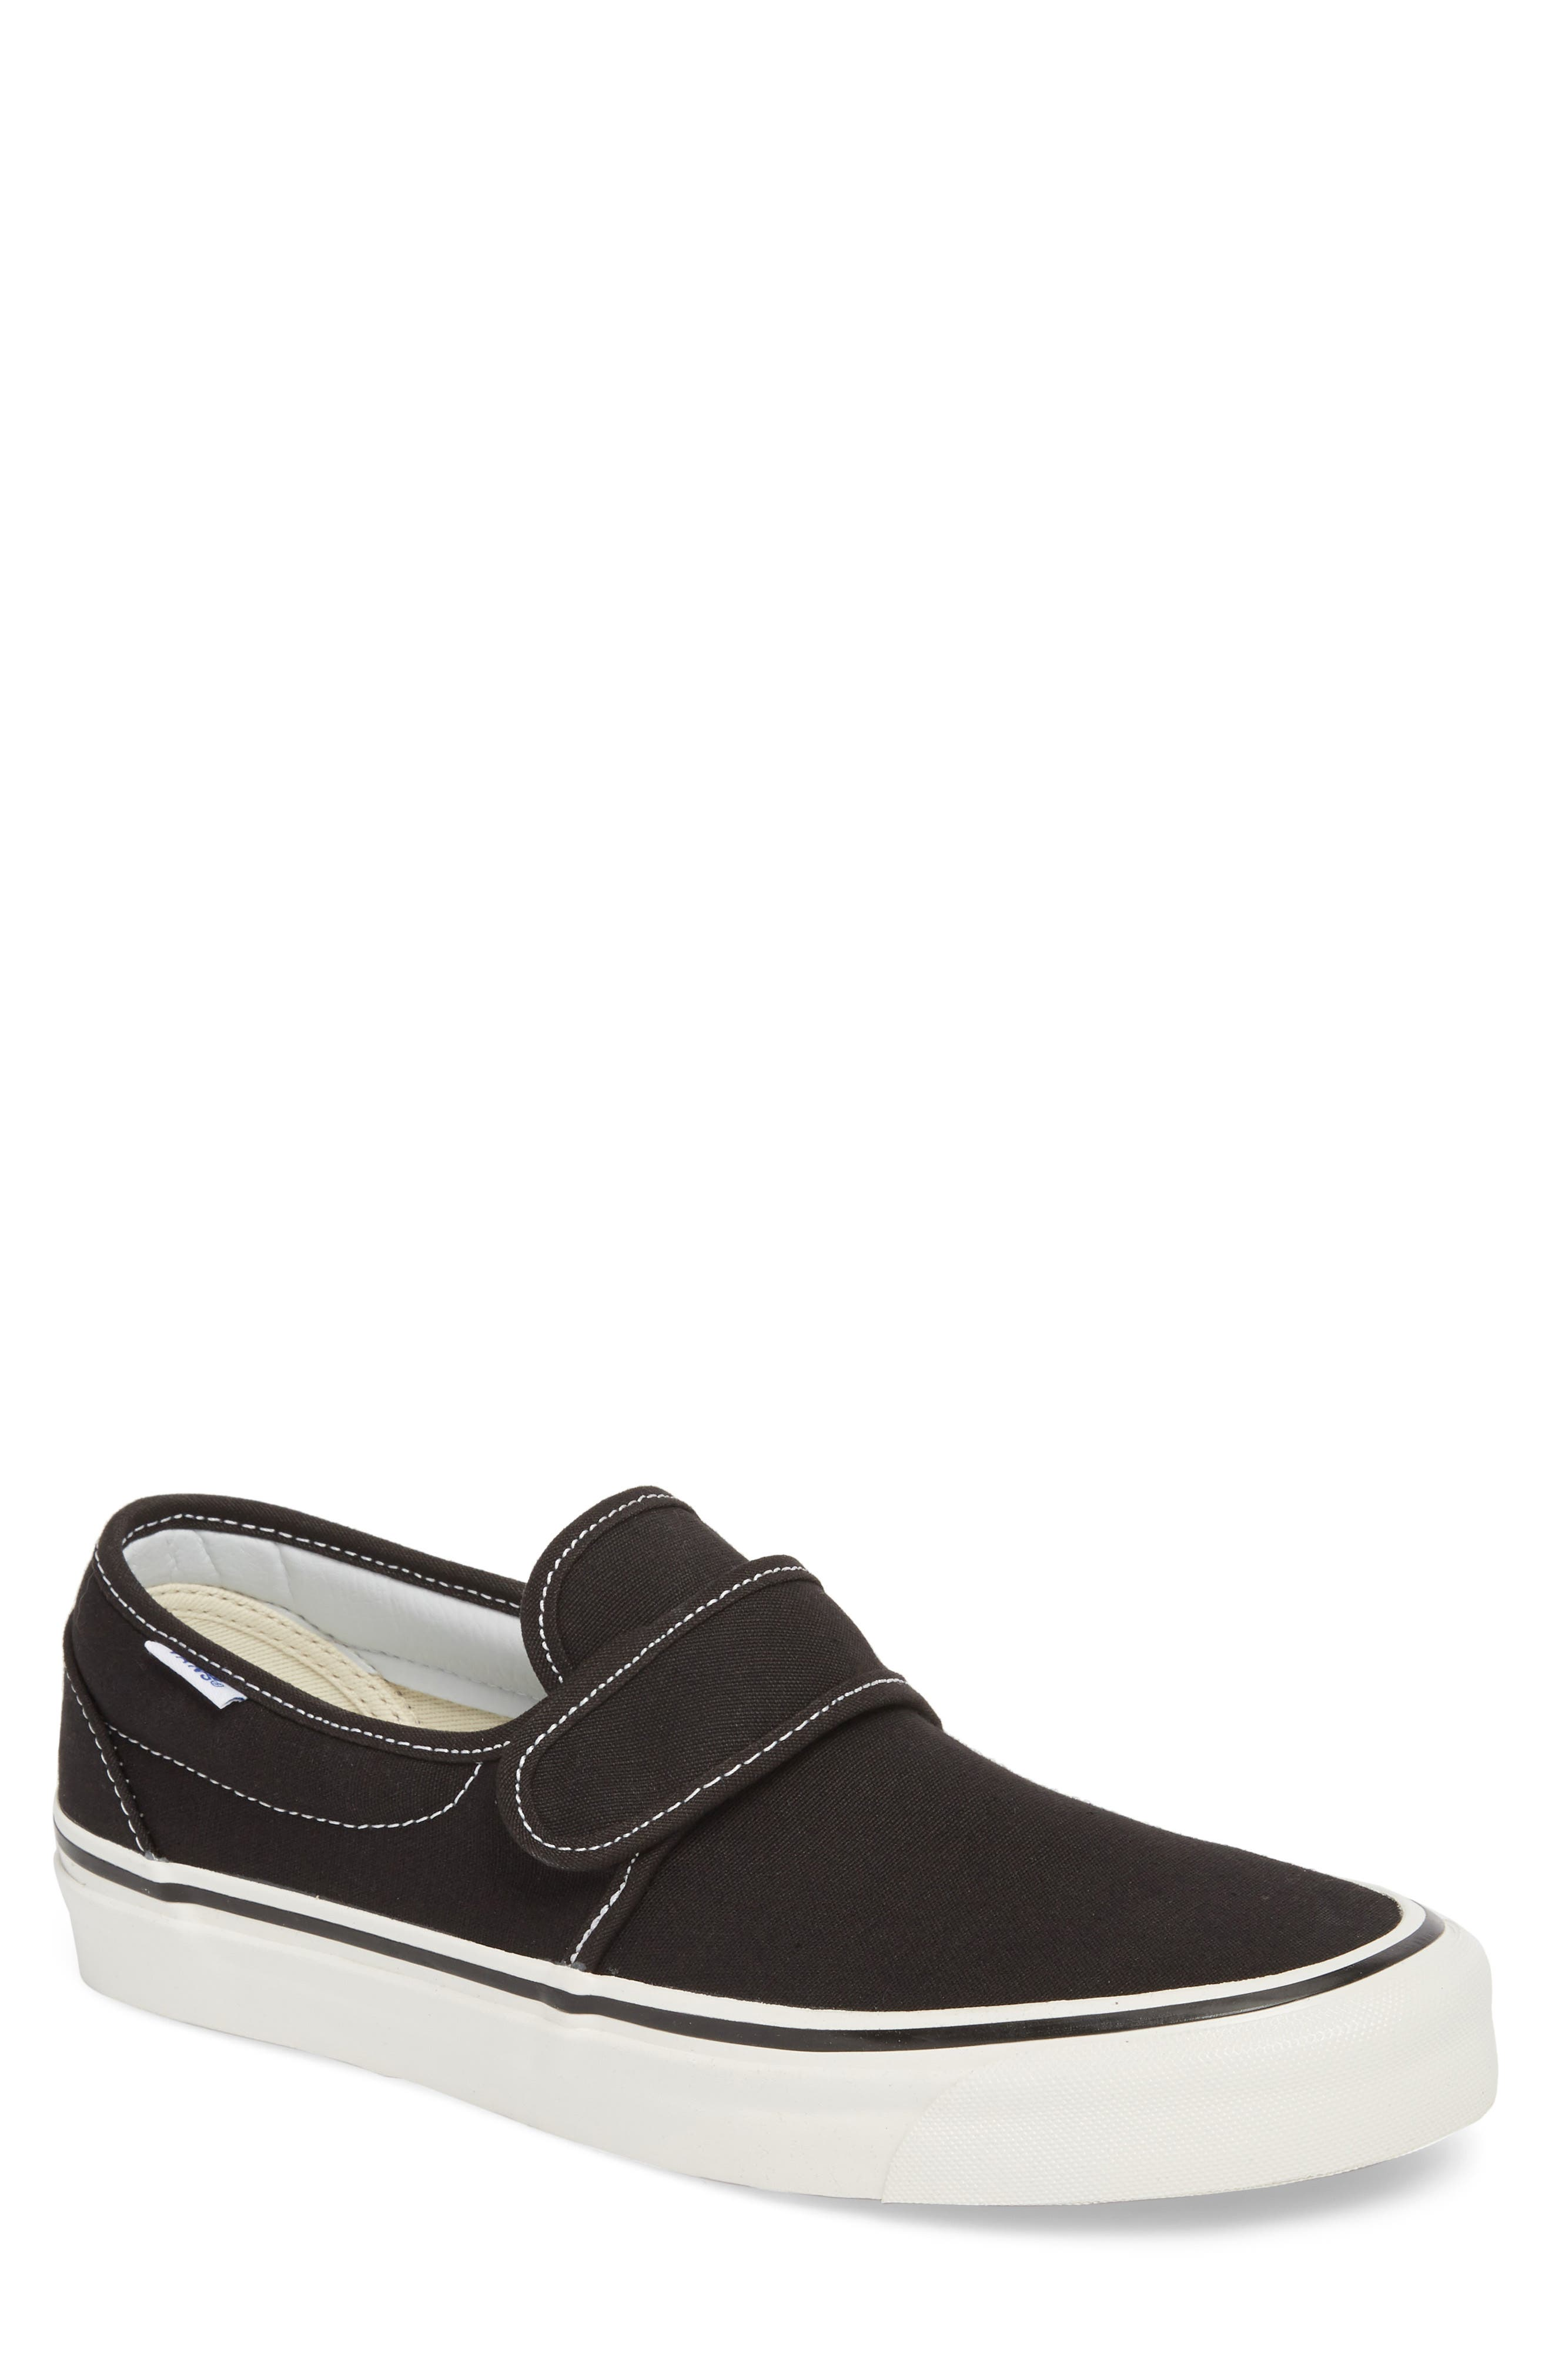 Anaheim Factory Slip-On 47 DX Sneaker,                             Main thumbnail 1, color,                             Black